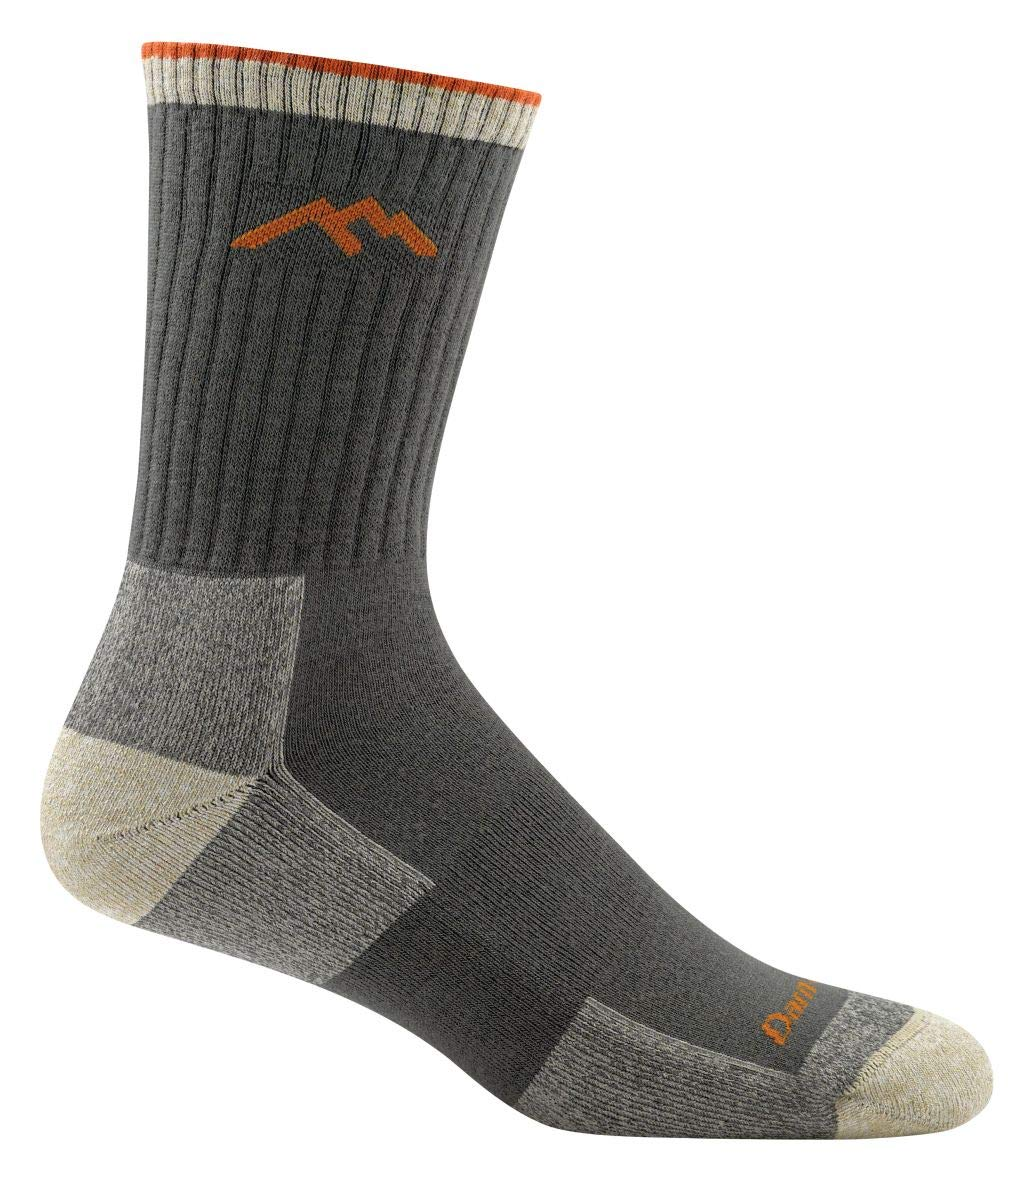 Darn Tough Coolmax Micro Crew Cushion Socks - Men's Olive Medium by Darn Tough